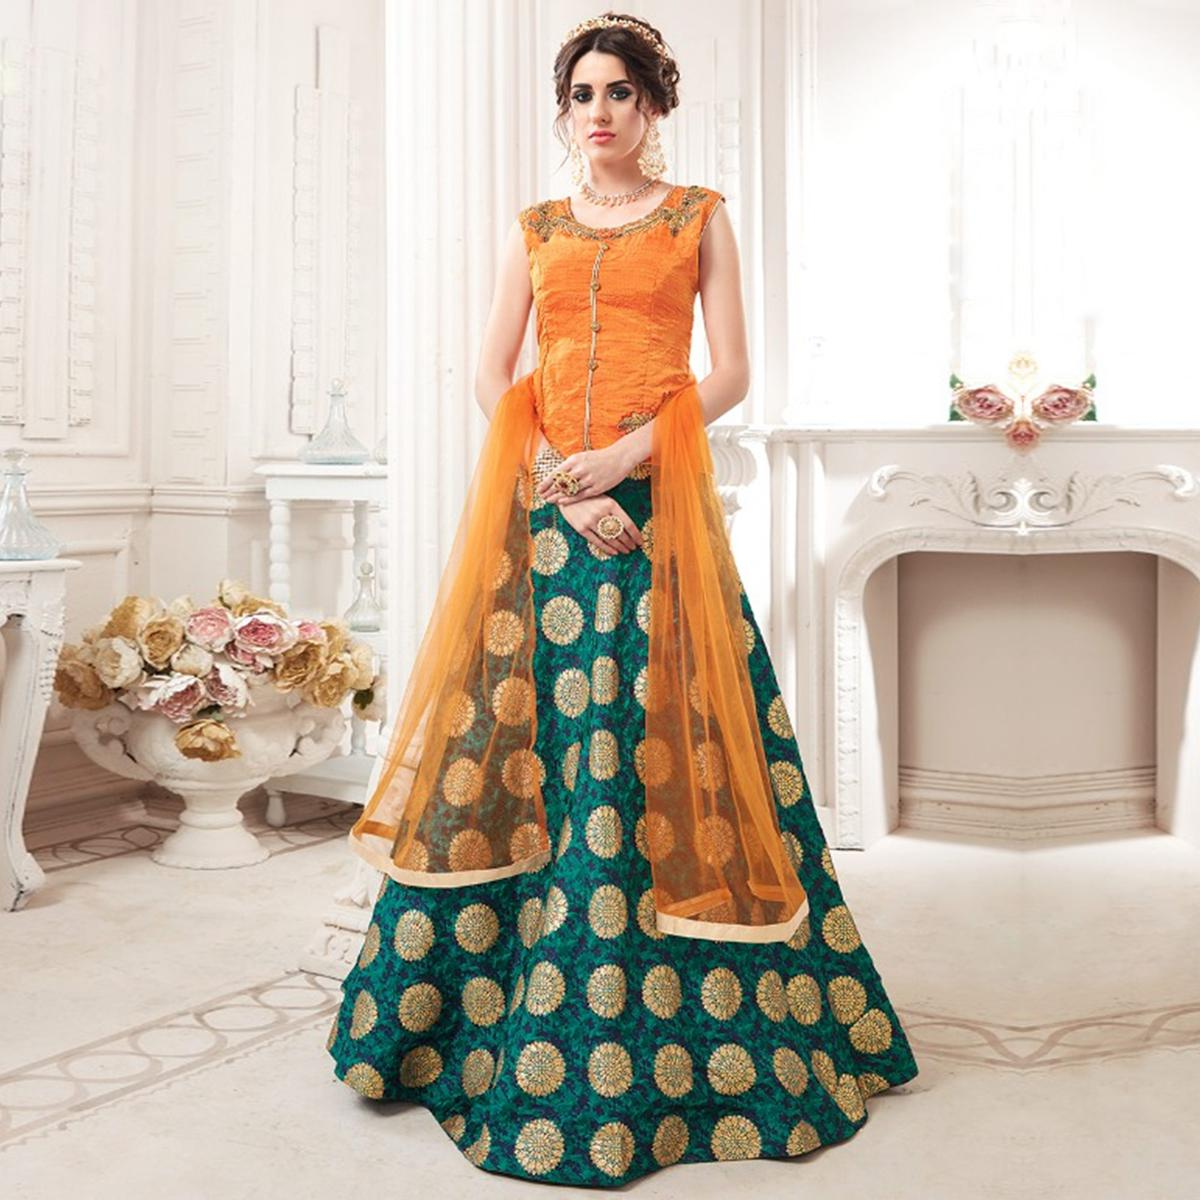 Marvellous Orange-Green Colored Partywear Embroidered Jacquard Silk Lehenga Choli